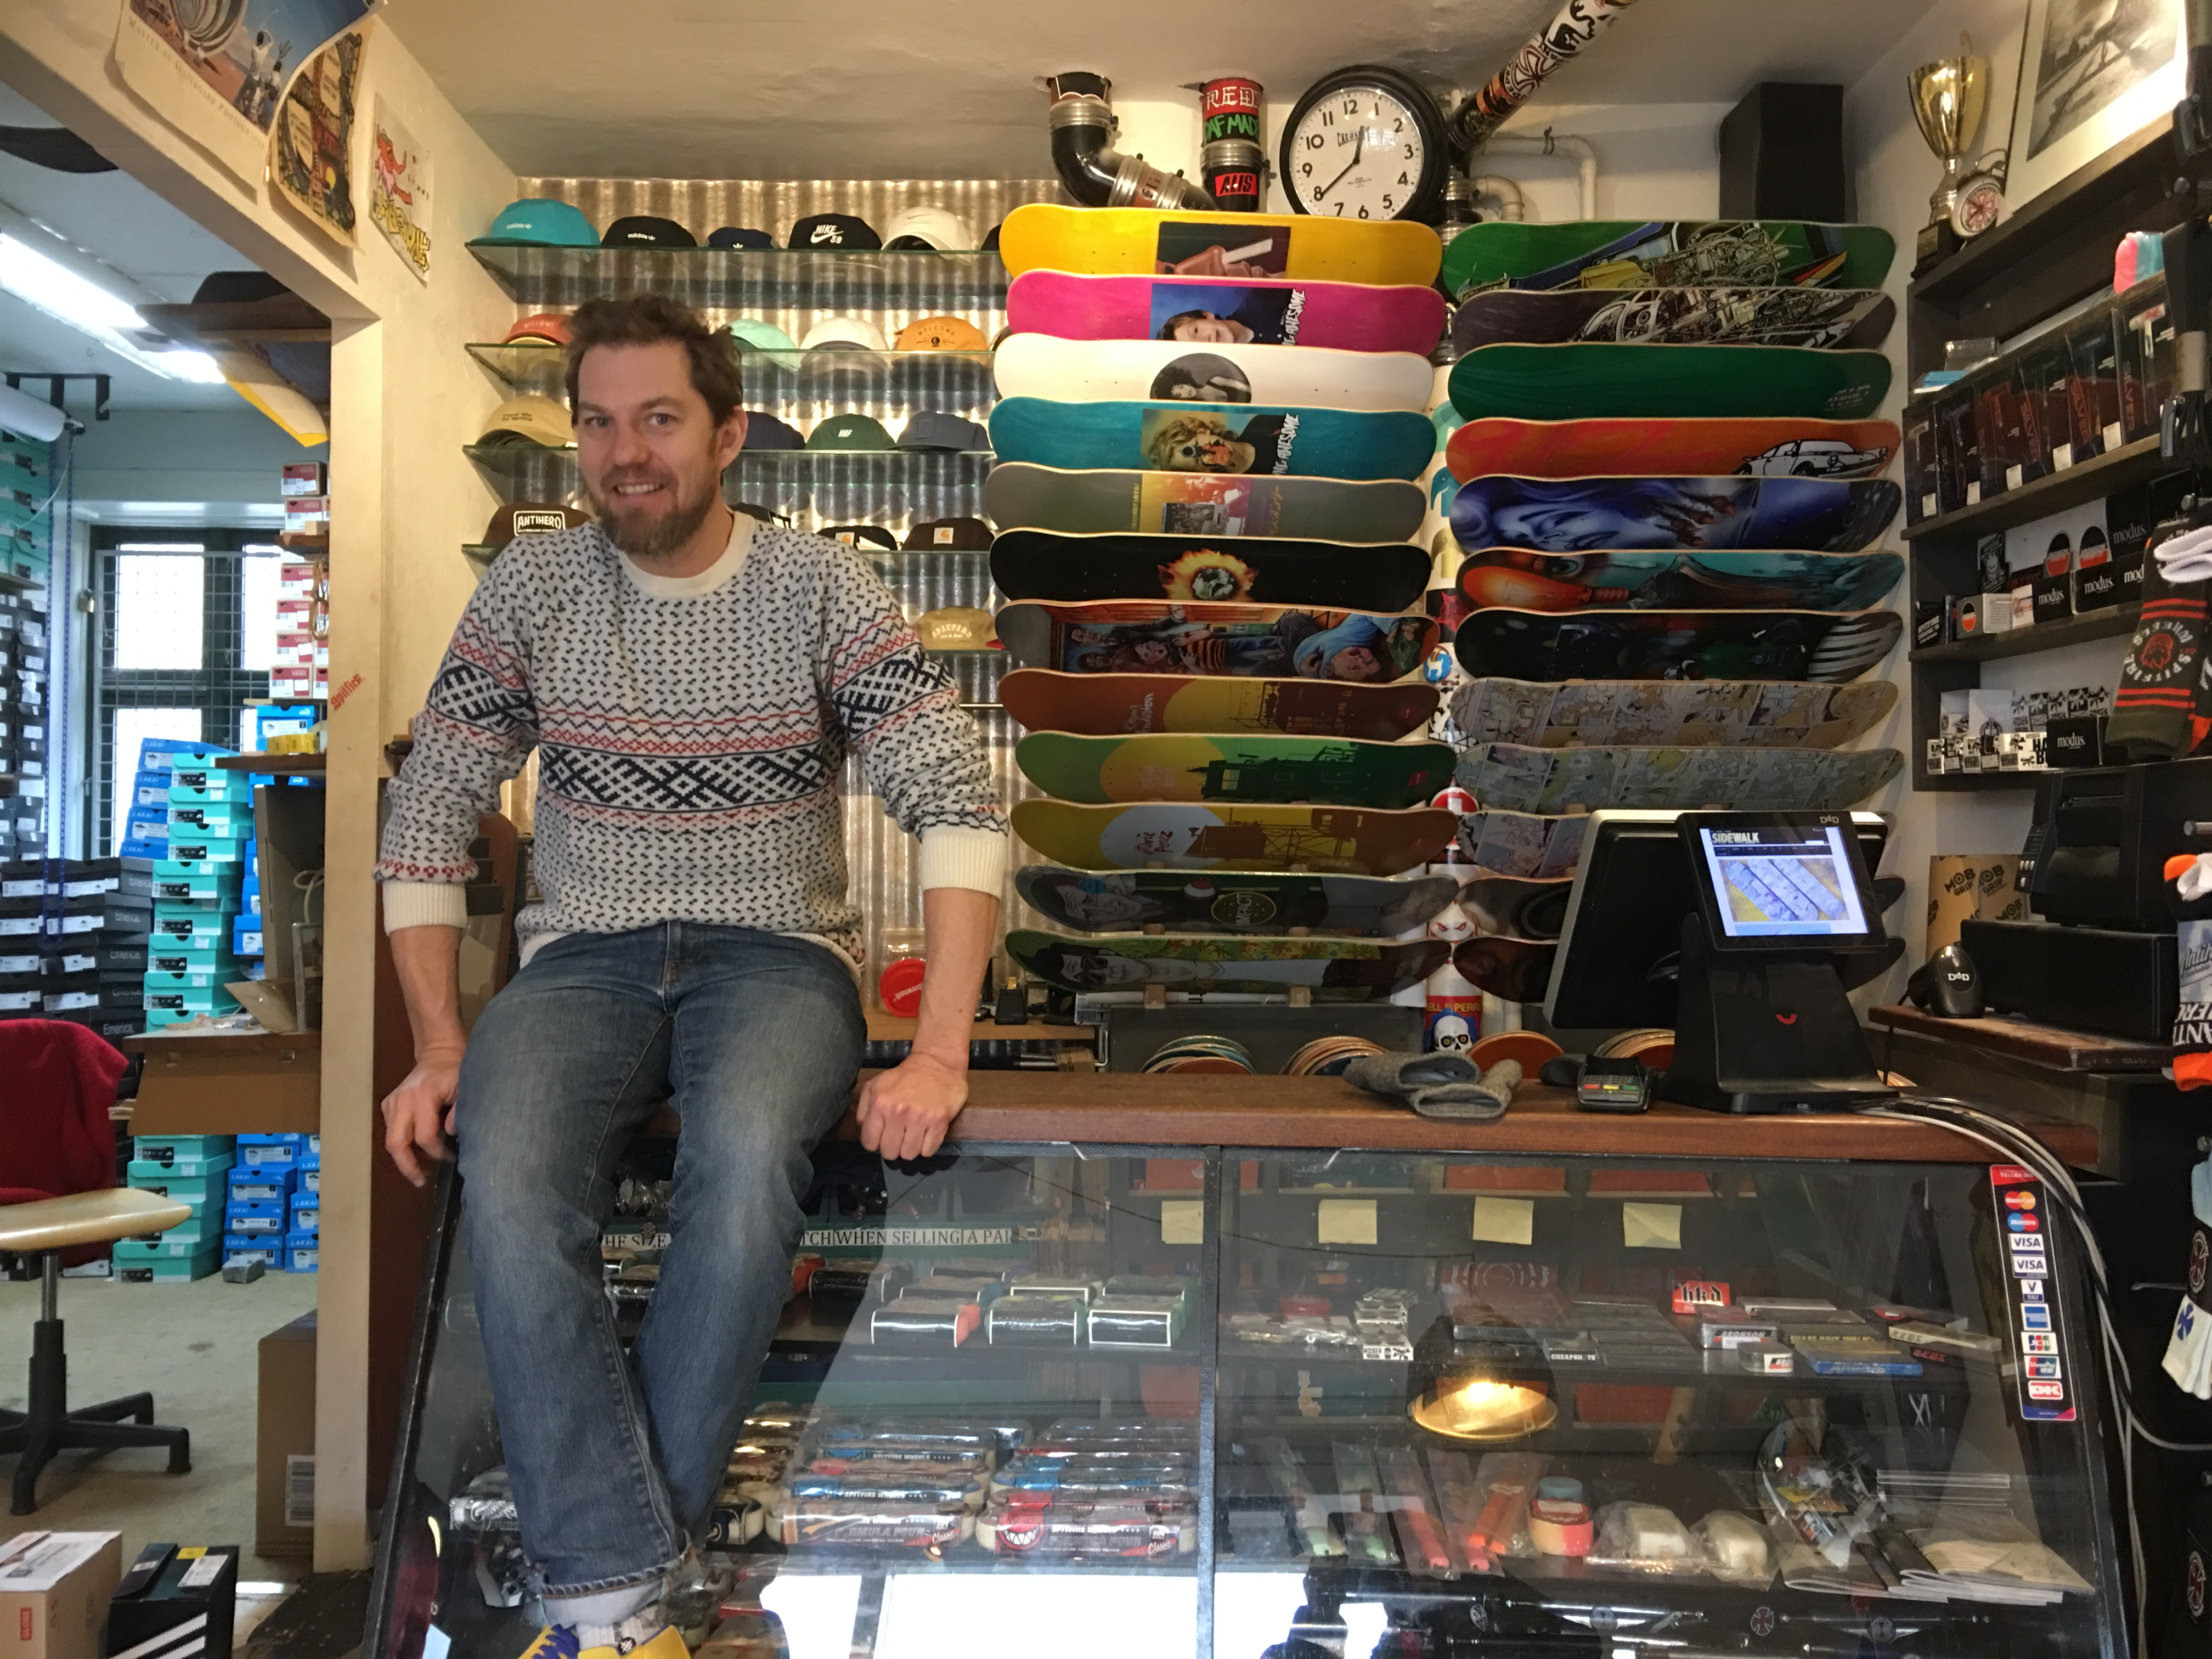 Thomas Madsen, skateboarder, father and sidewalk skateshop owner.